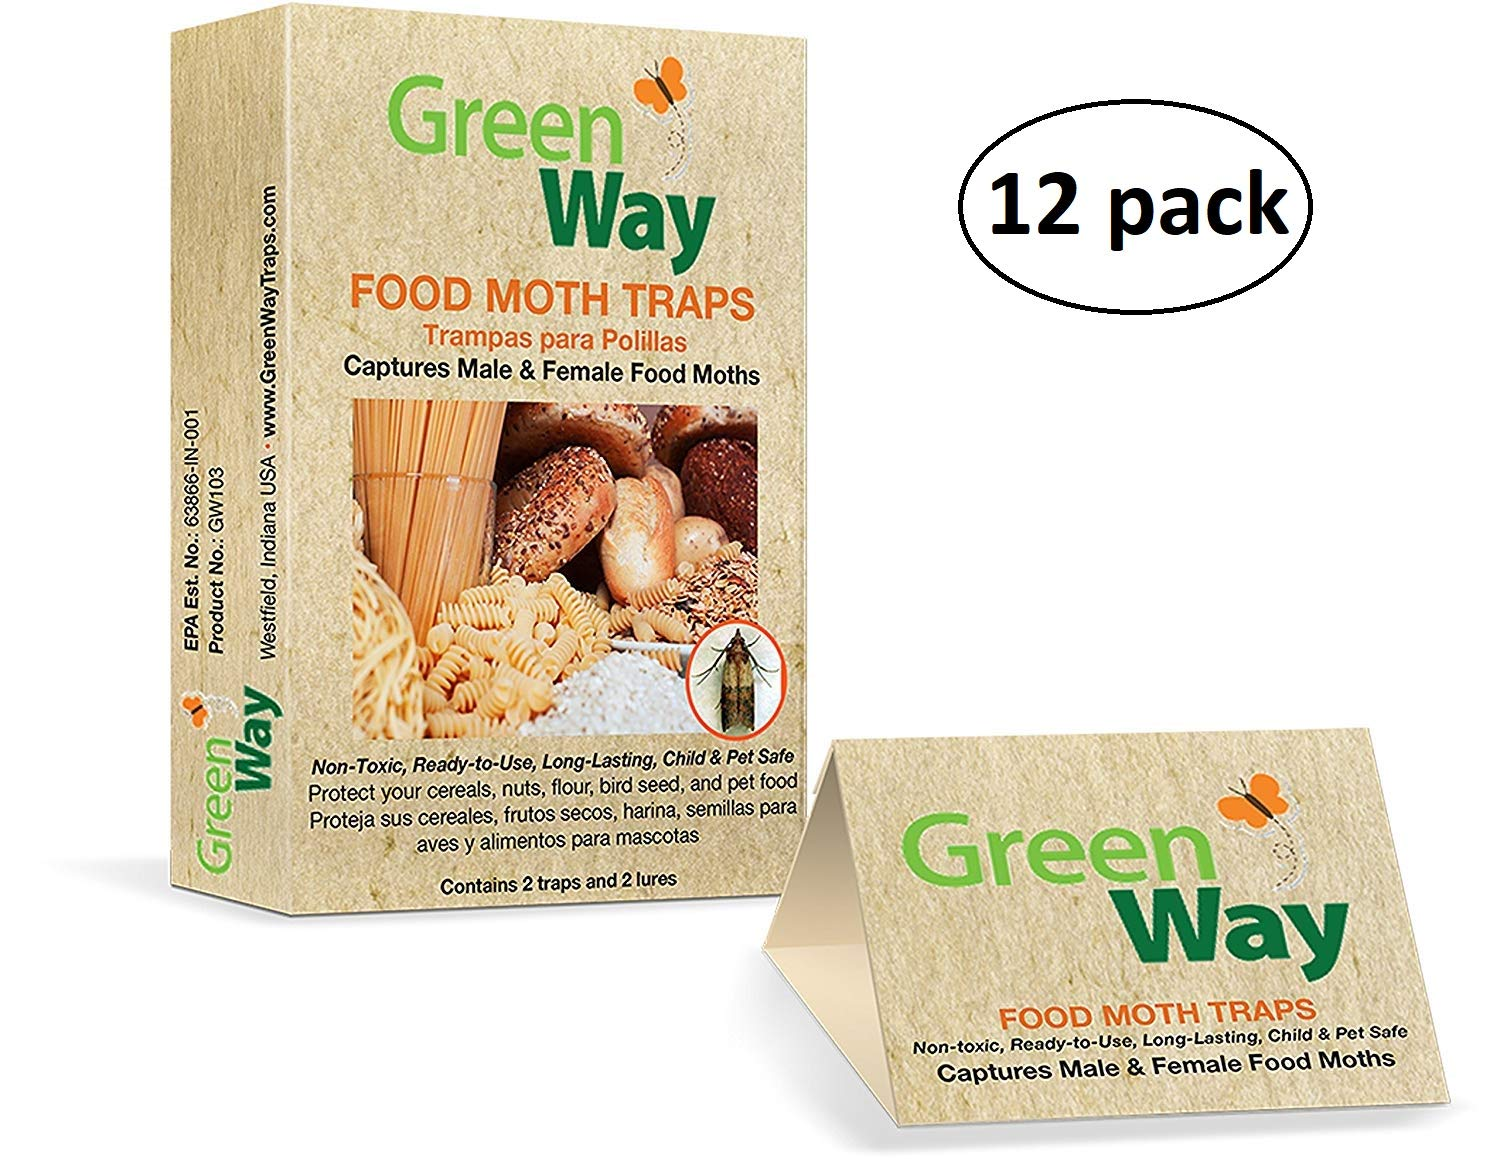 GreenWay Food Moth Trap - 12 Boxes - 24 Traps and Lures | Pheromone Attractant, Ready to Use | Safe, Non-Toxic with No Insecticides or Odor, Eco Friendly, Kid and Pet Safe by GreenWay